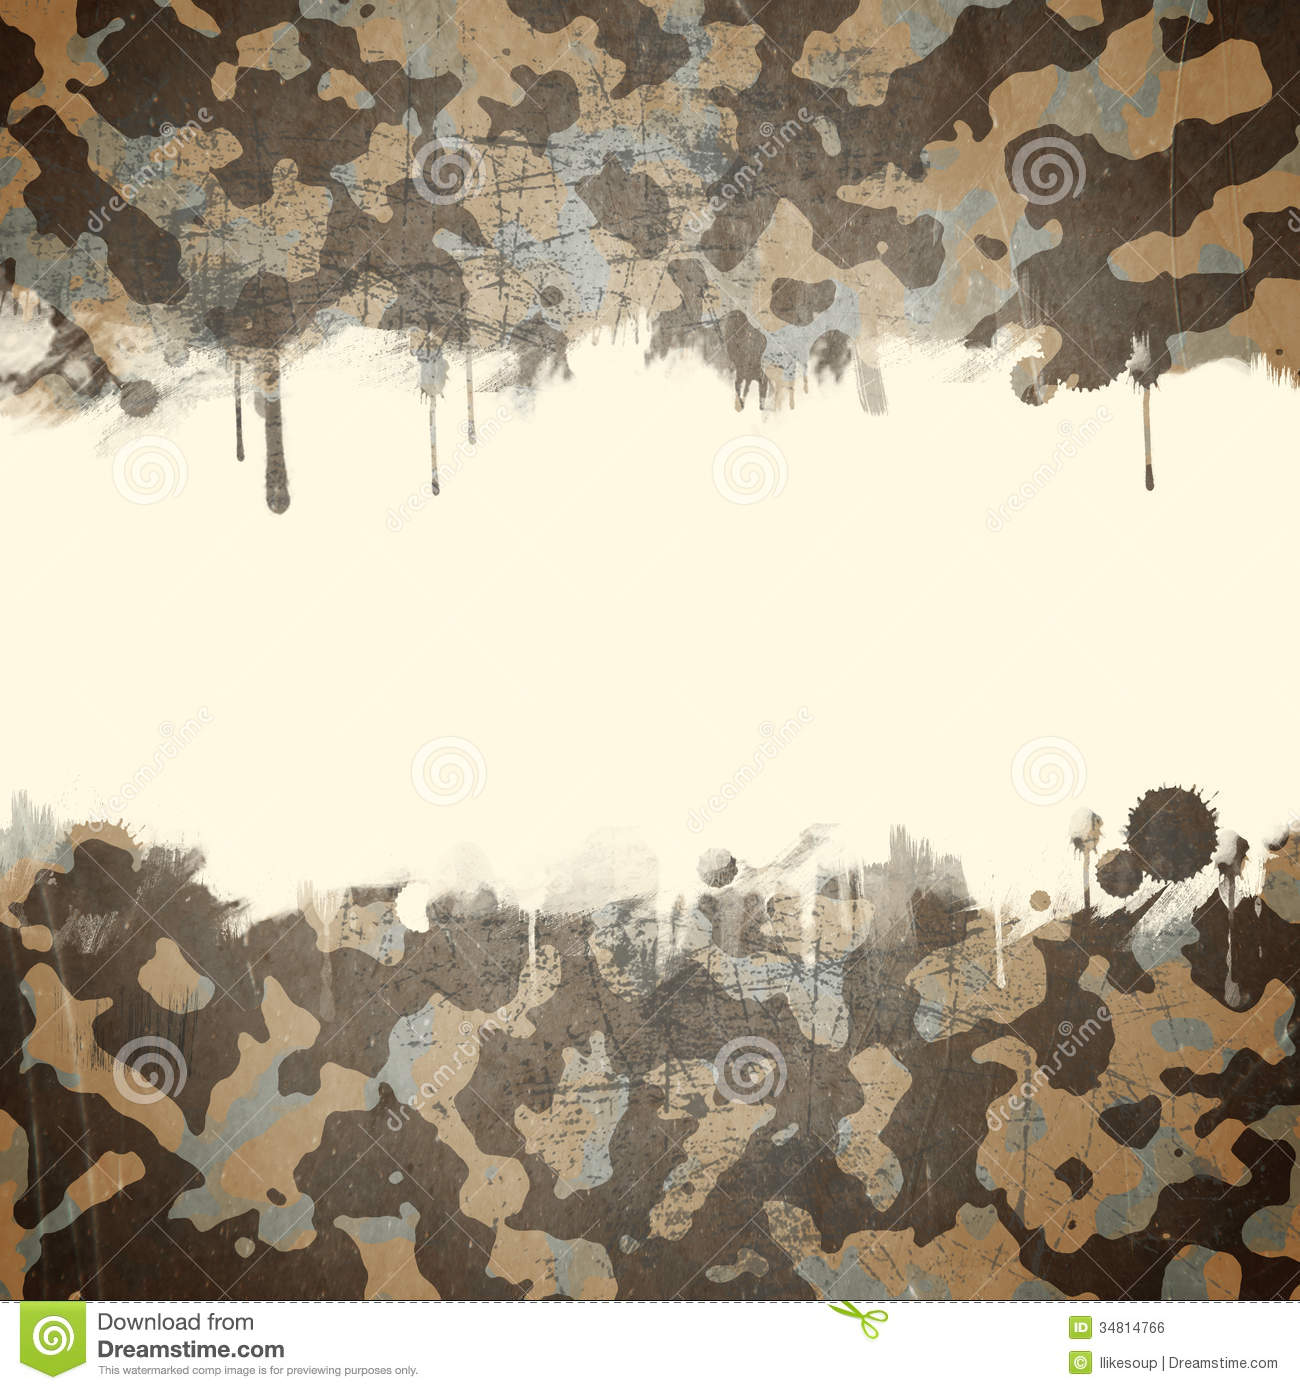 Army Camouflage Background Clipart - Clipart Kid